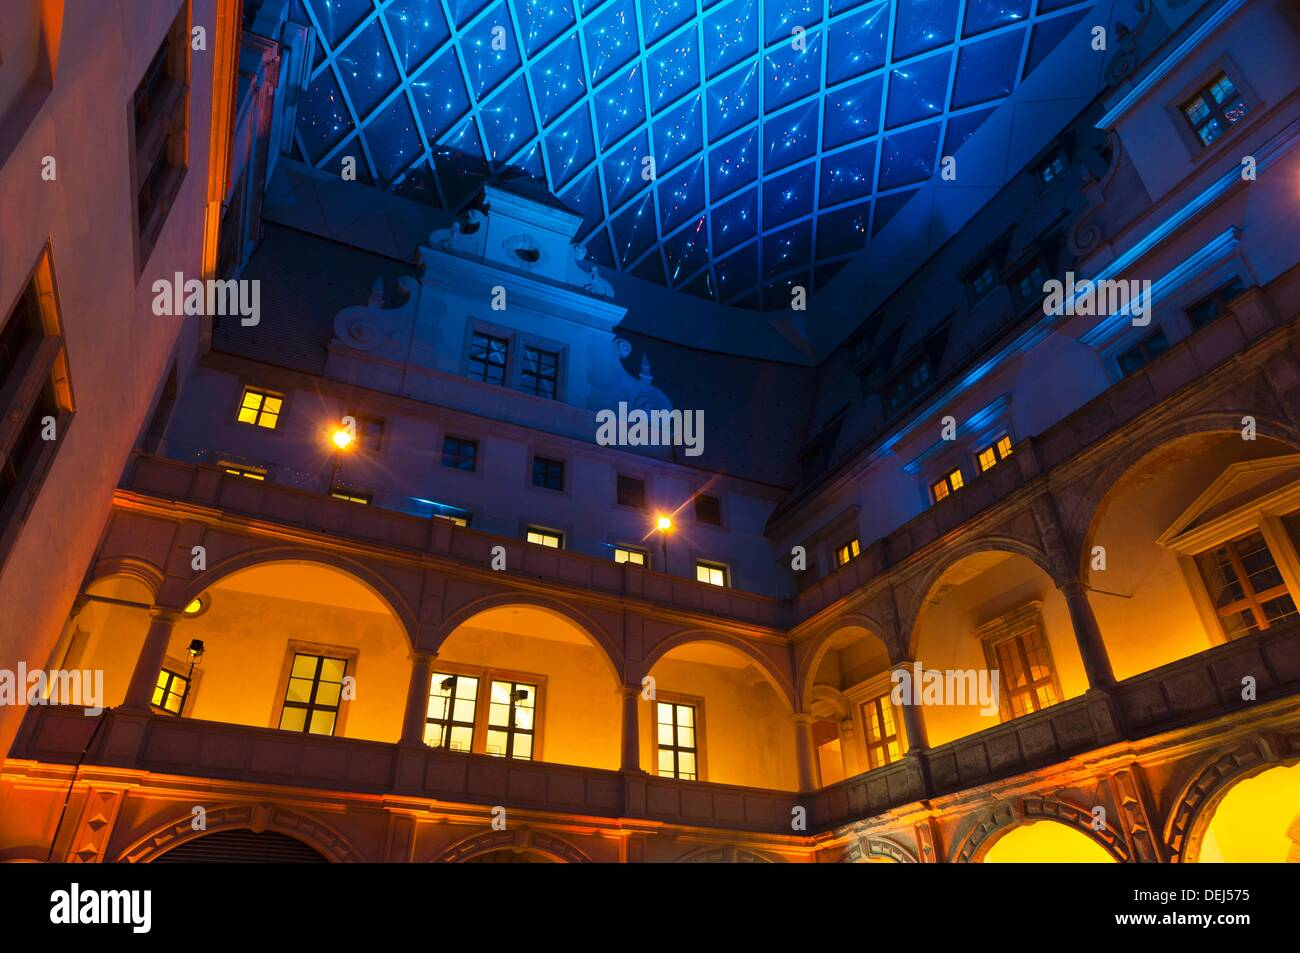 Art Collections Stock Photos & Art Collections Stock Images - Alamy